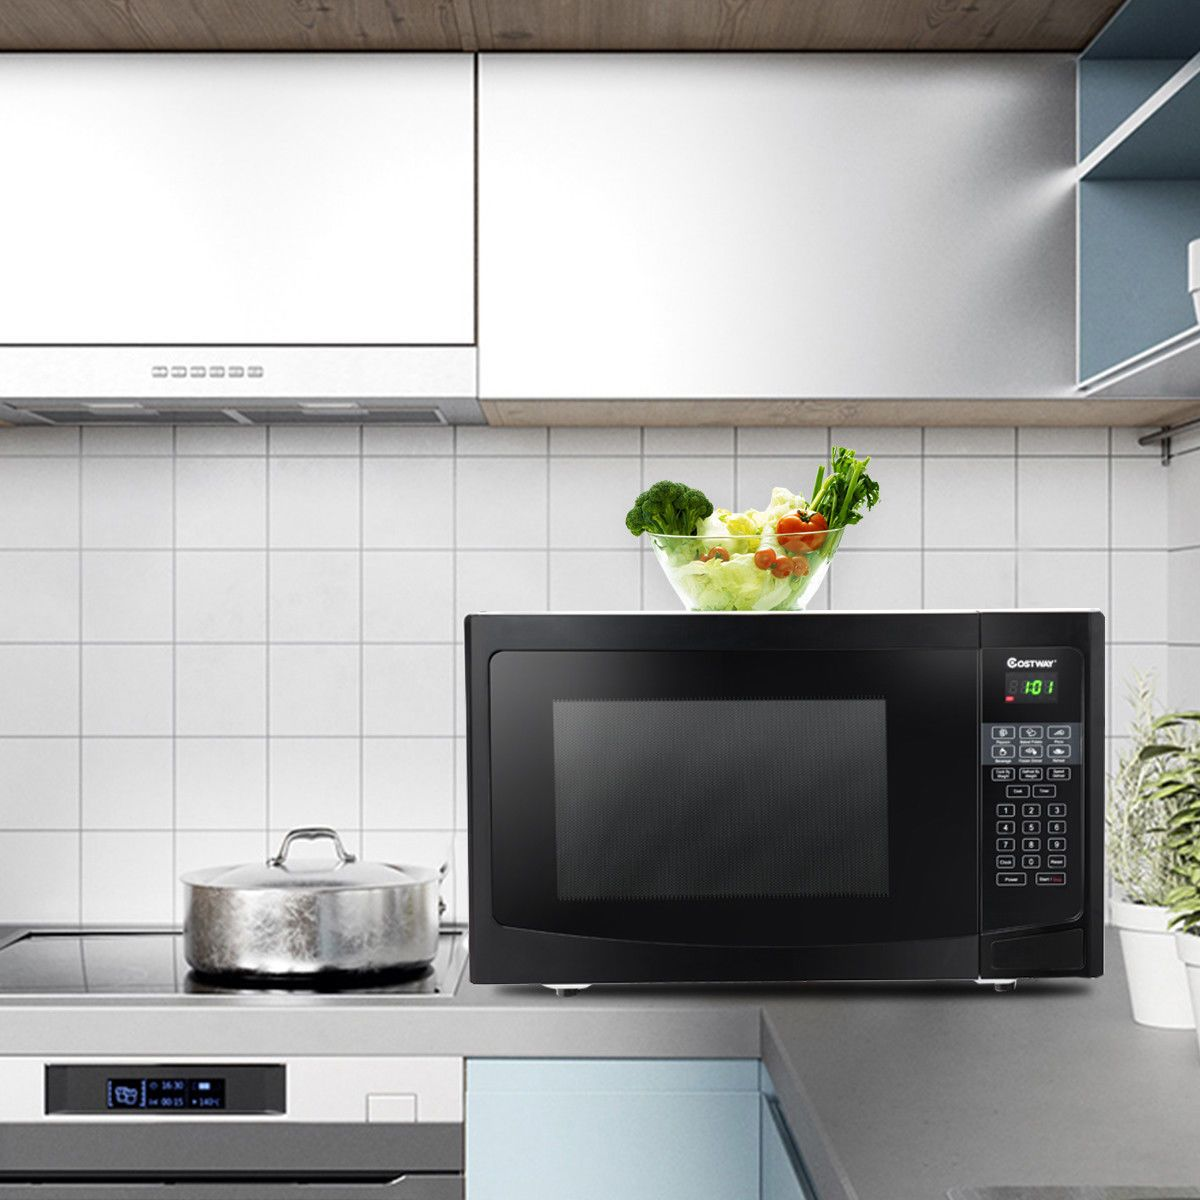 early black friday deals on microwaves are available right now and they re insanely good